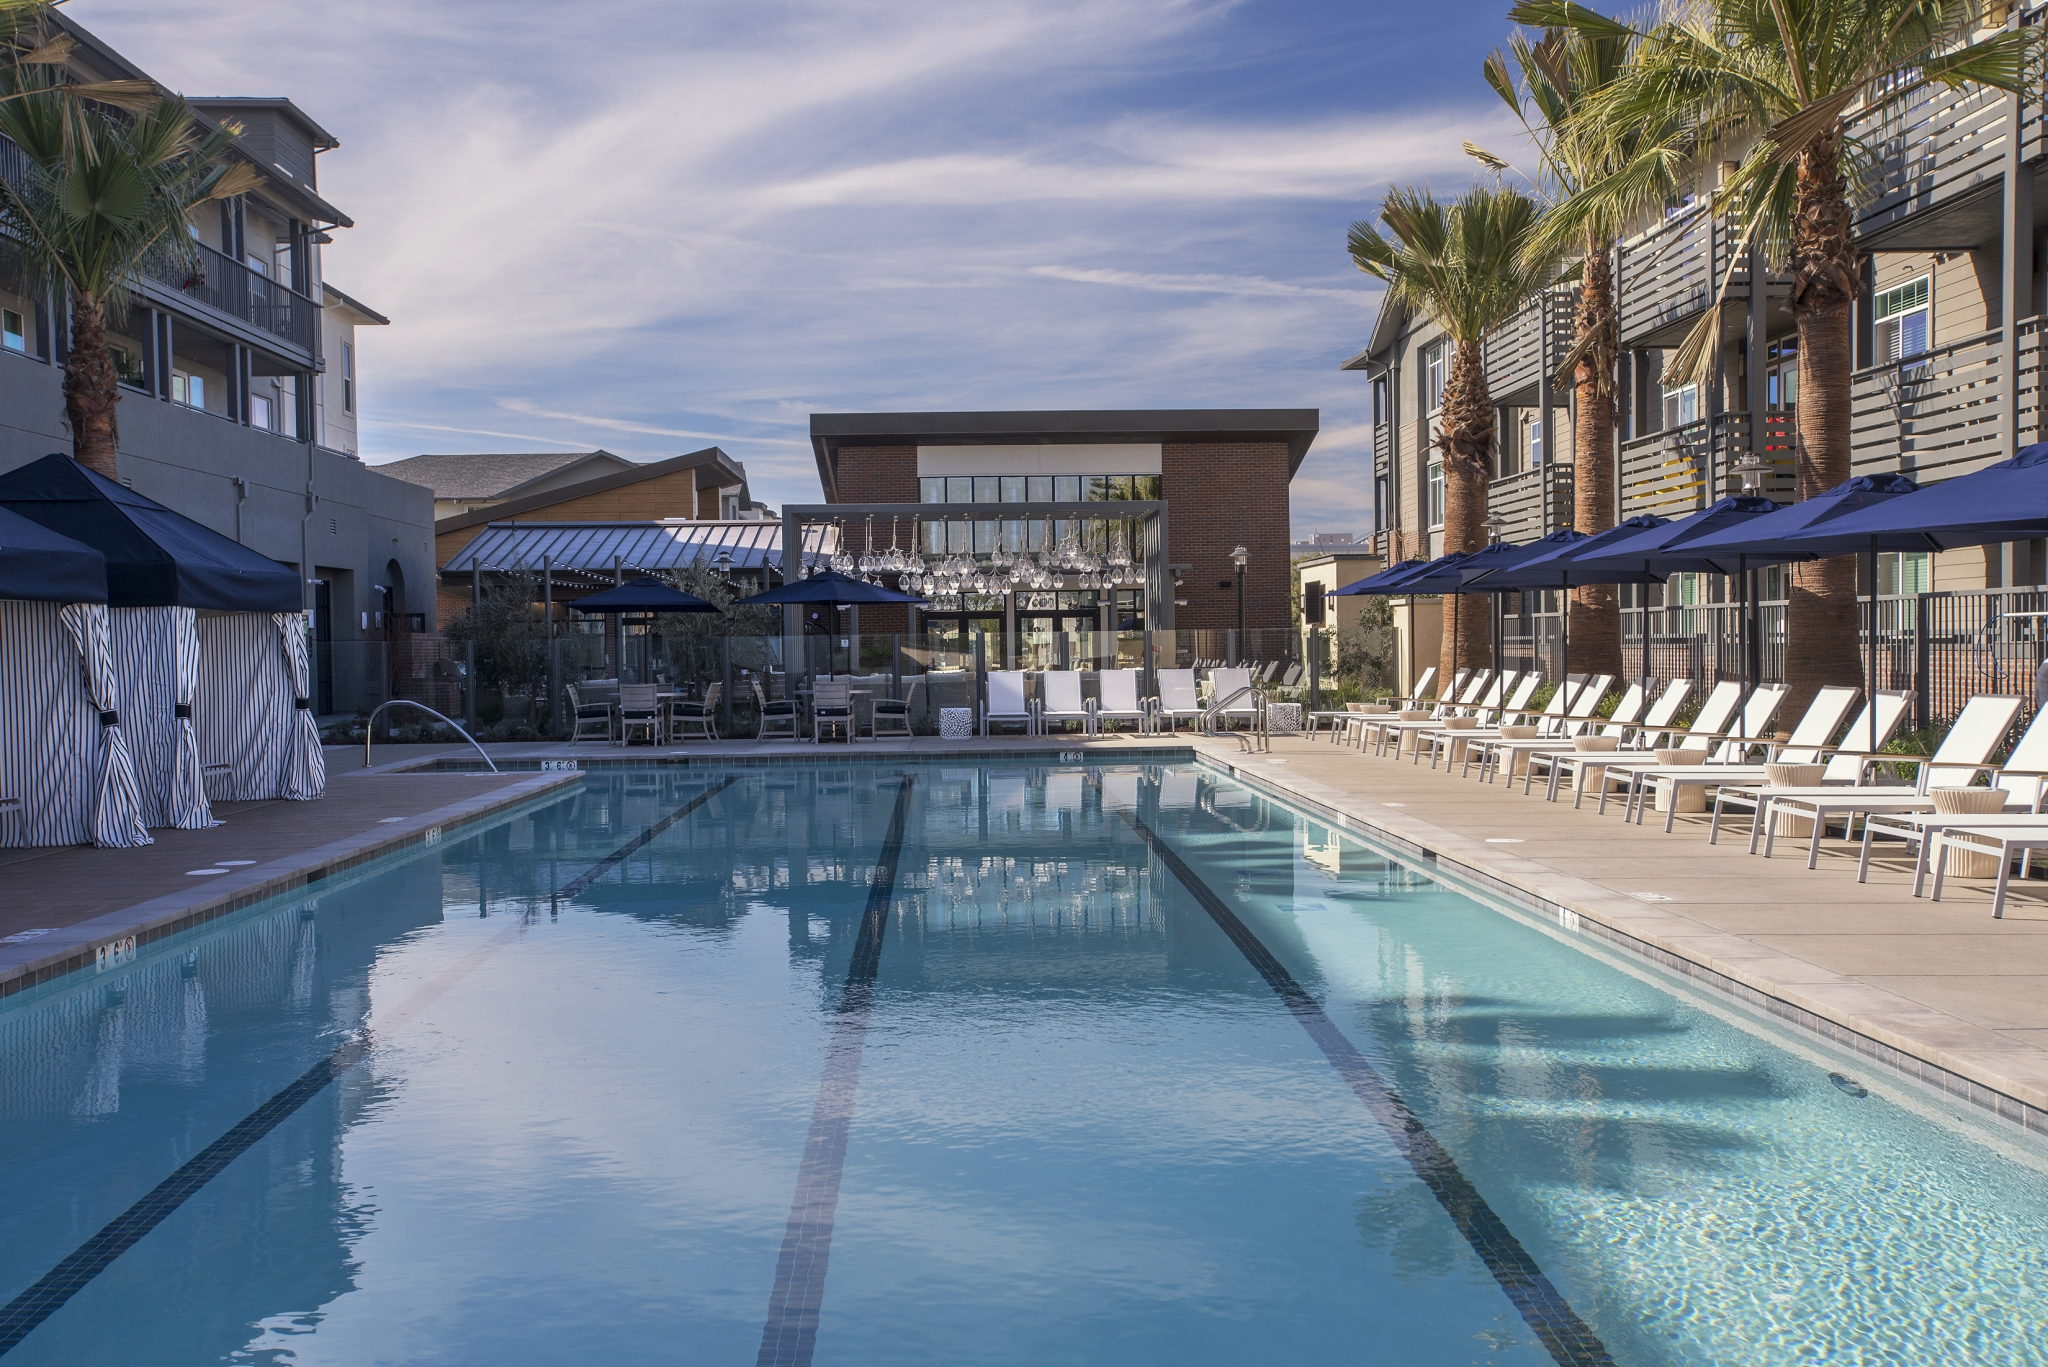 Exterior of pool with lounge chairs, umbrellas, and cabanas surrounded by apartment complex